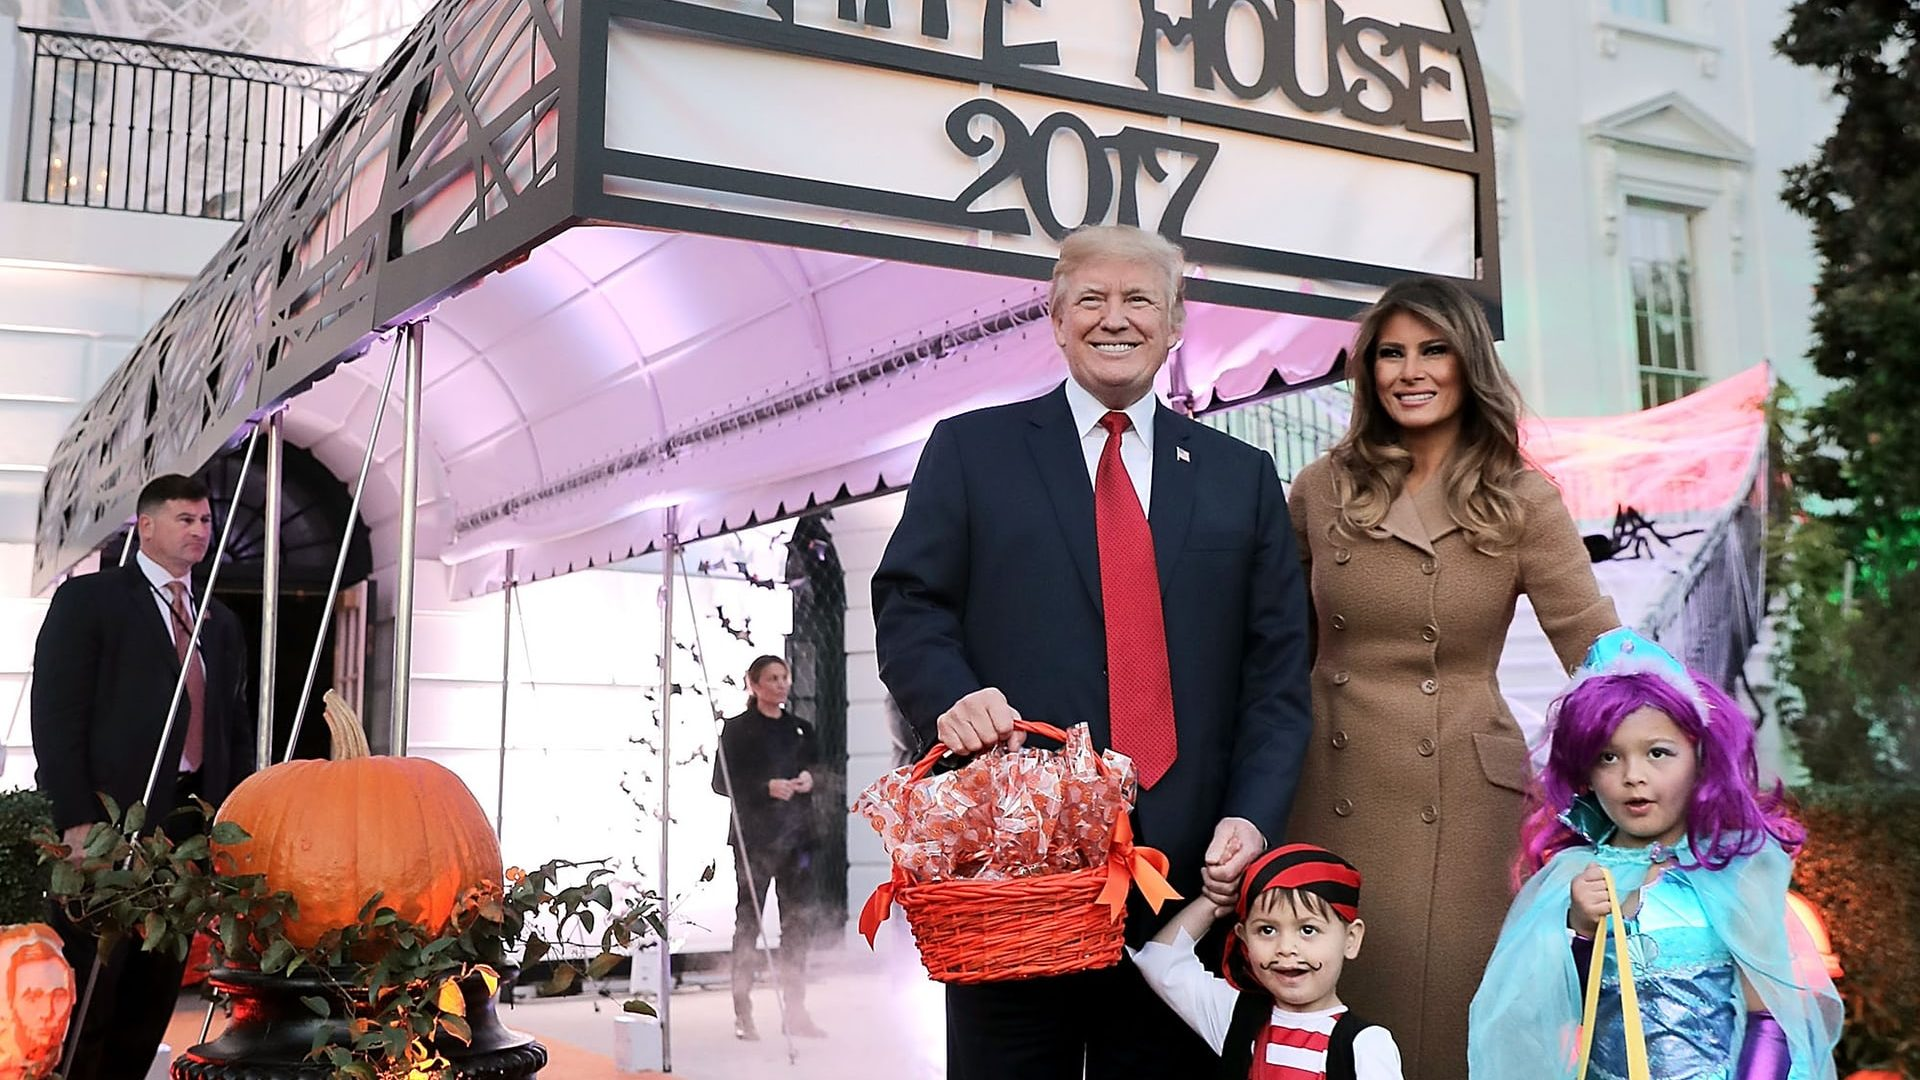 Washington DC, US President Donald Trump and the first lady, Melania Trump, host Halloween at the White House Photograph: Chip Somodevilla/Getty Images